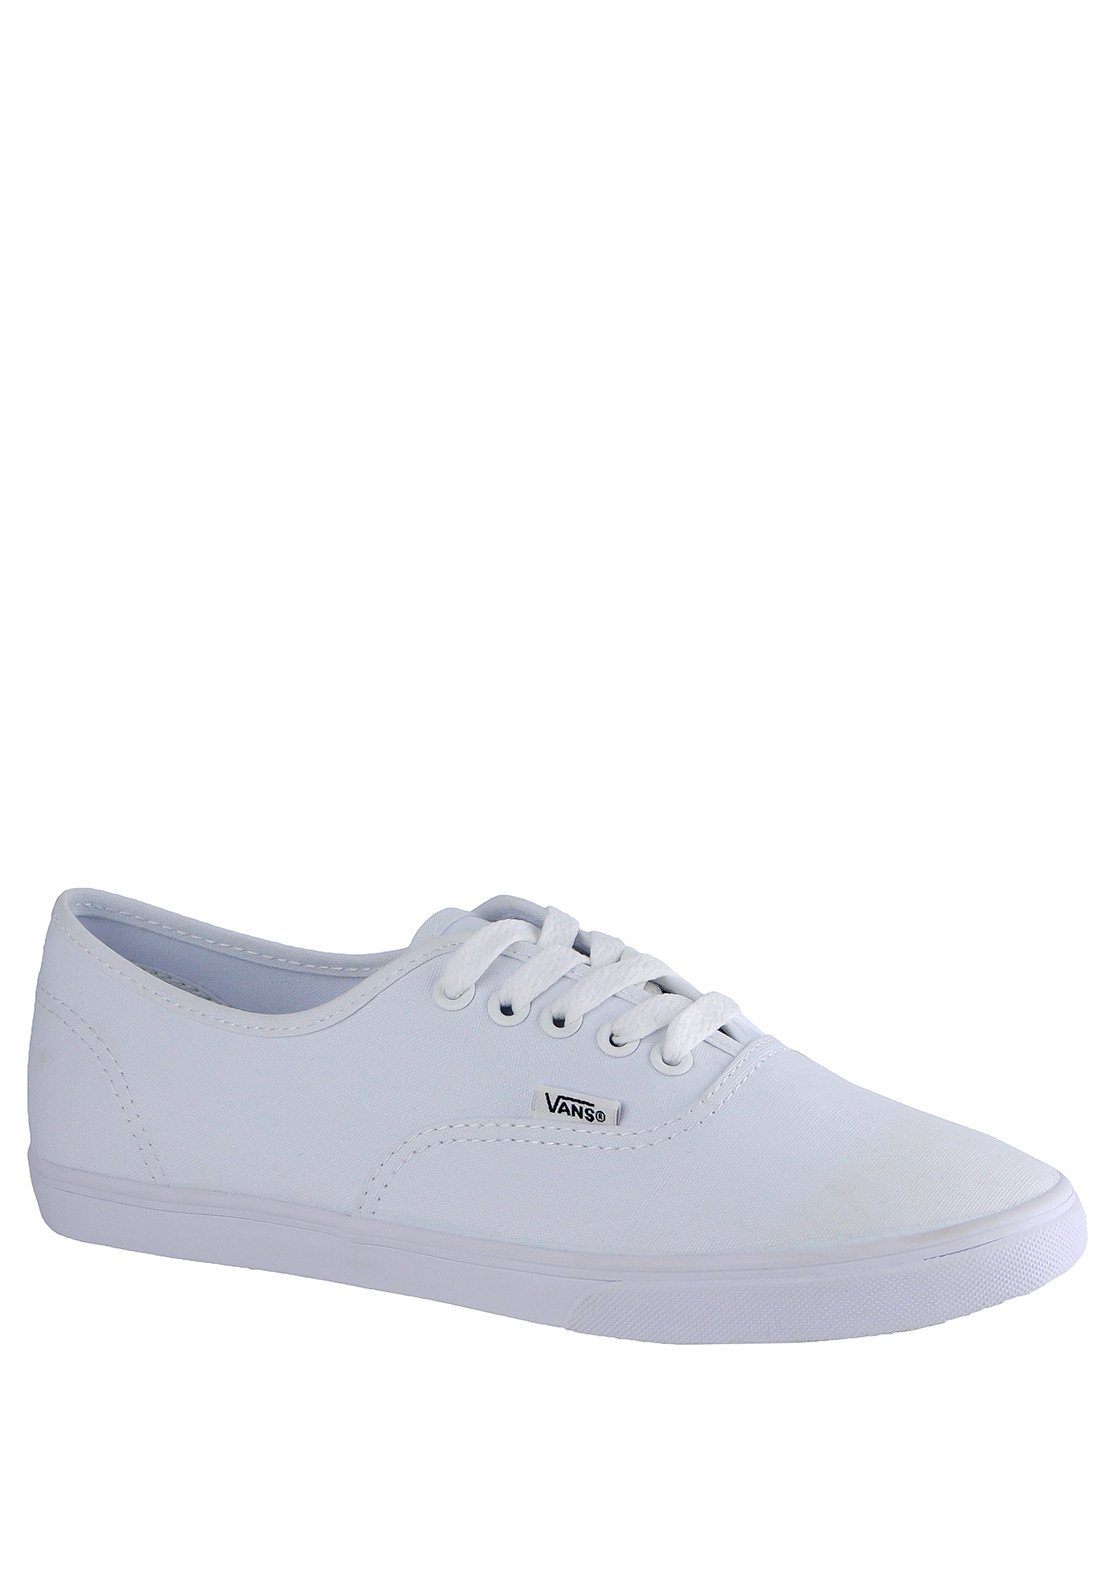 Vans Authentic Lo Pro Shoes, White